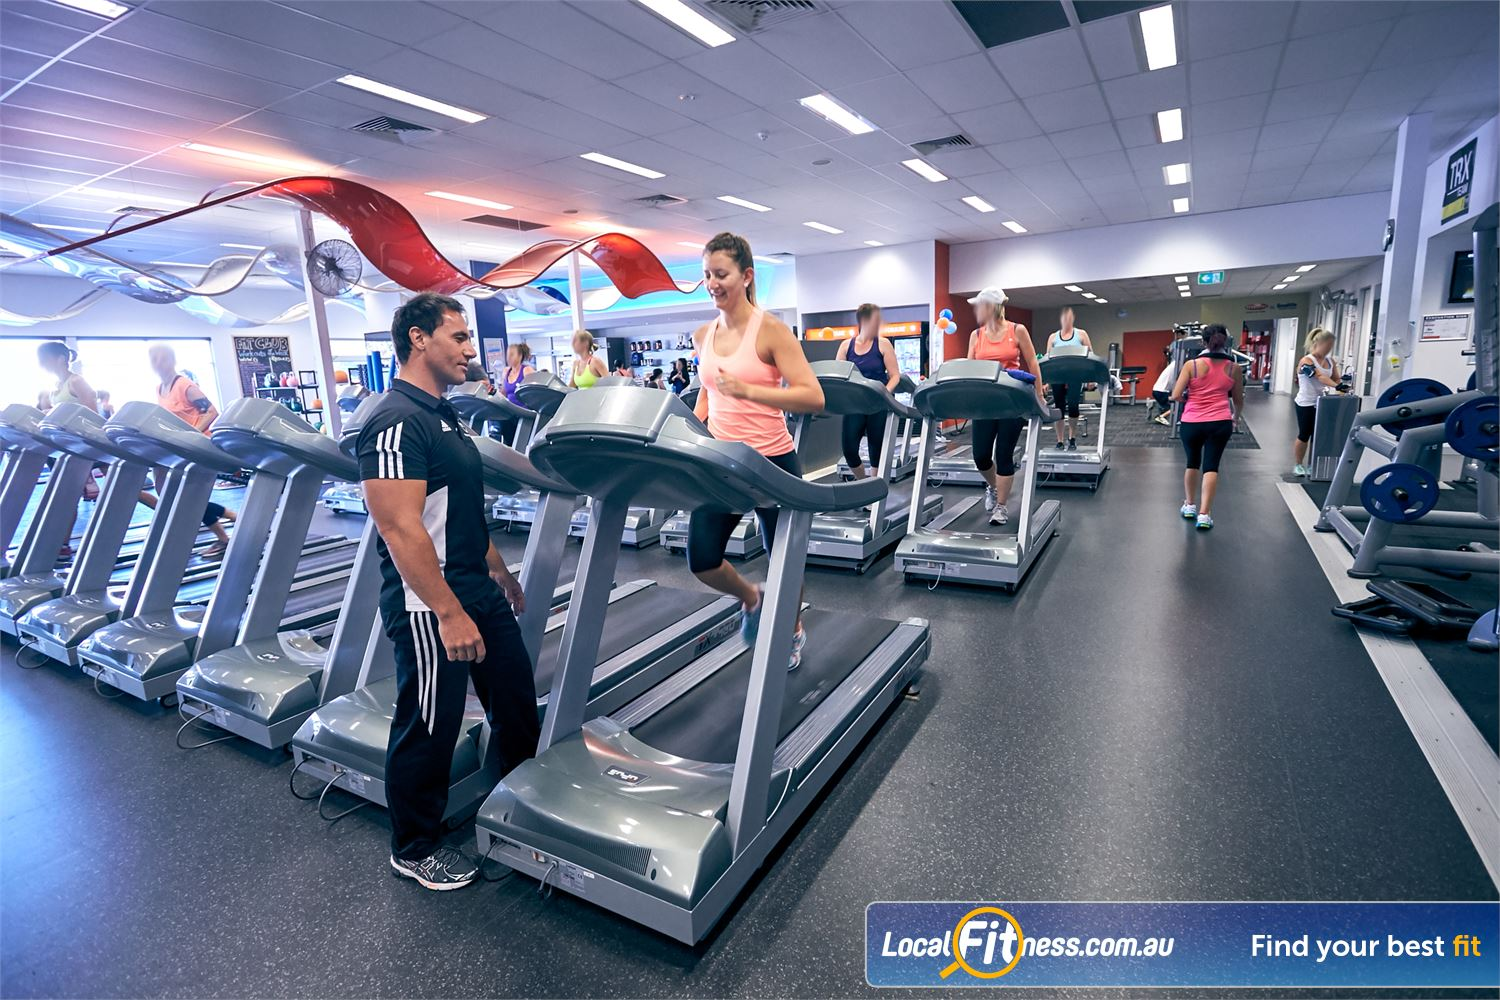 Goodlife Health Clubs Cross Roads Near Hawthorn Our team of Westbourne Park gym instructors can help you with your weight-loss and cardio goals.